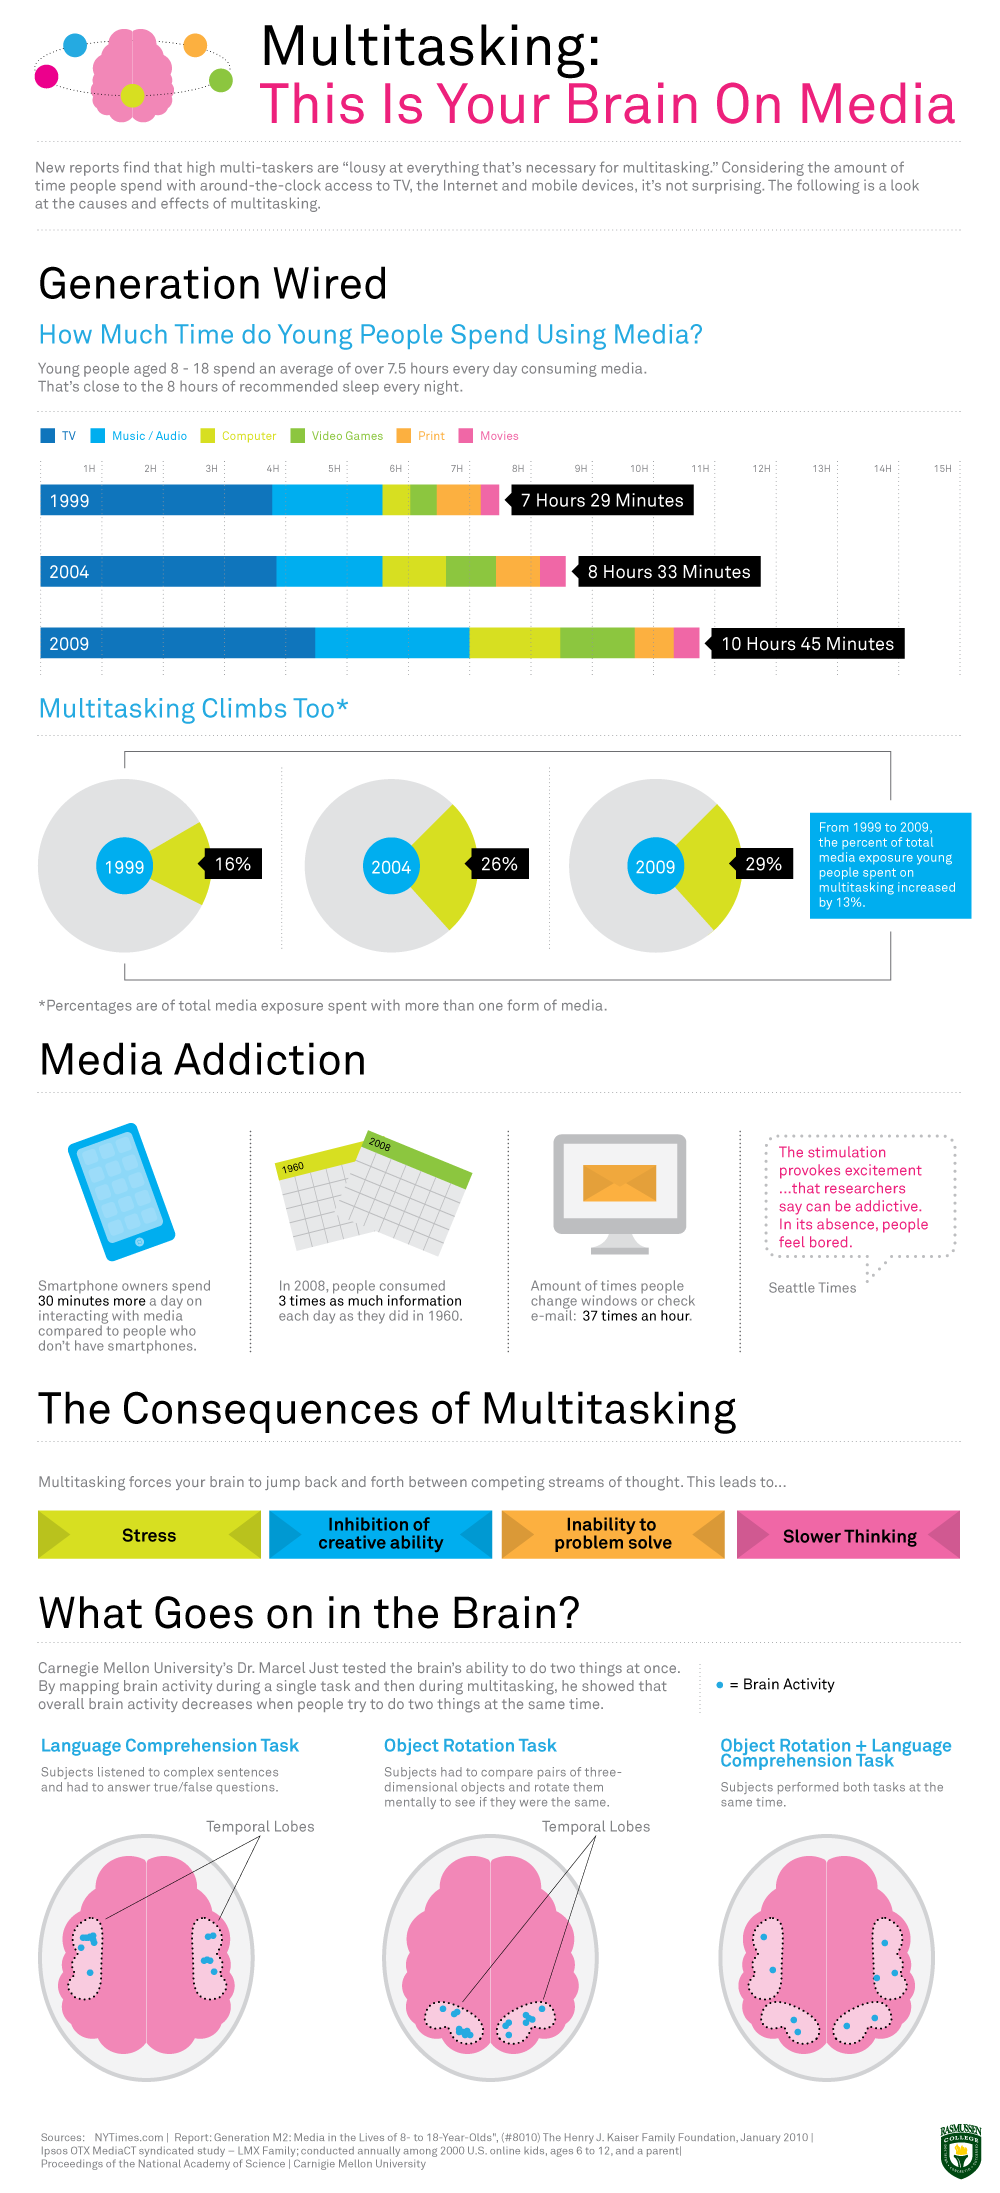 Multitasking:This is Your Brain on Media